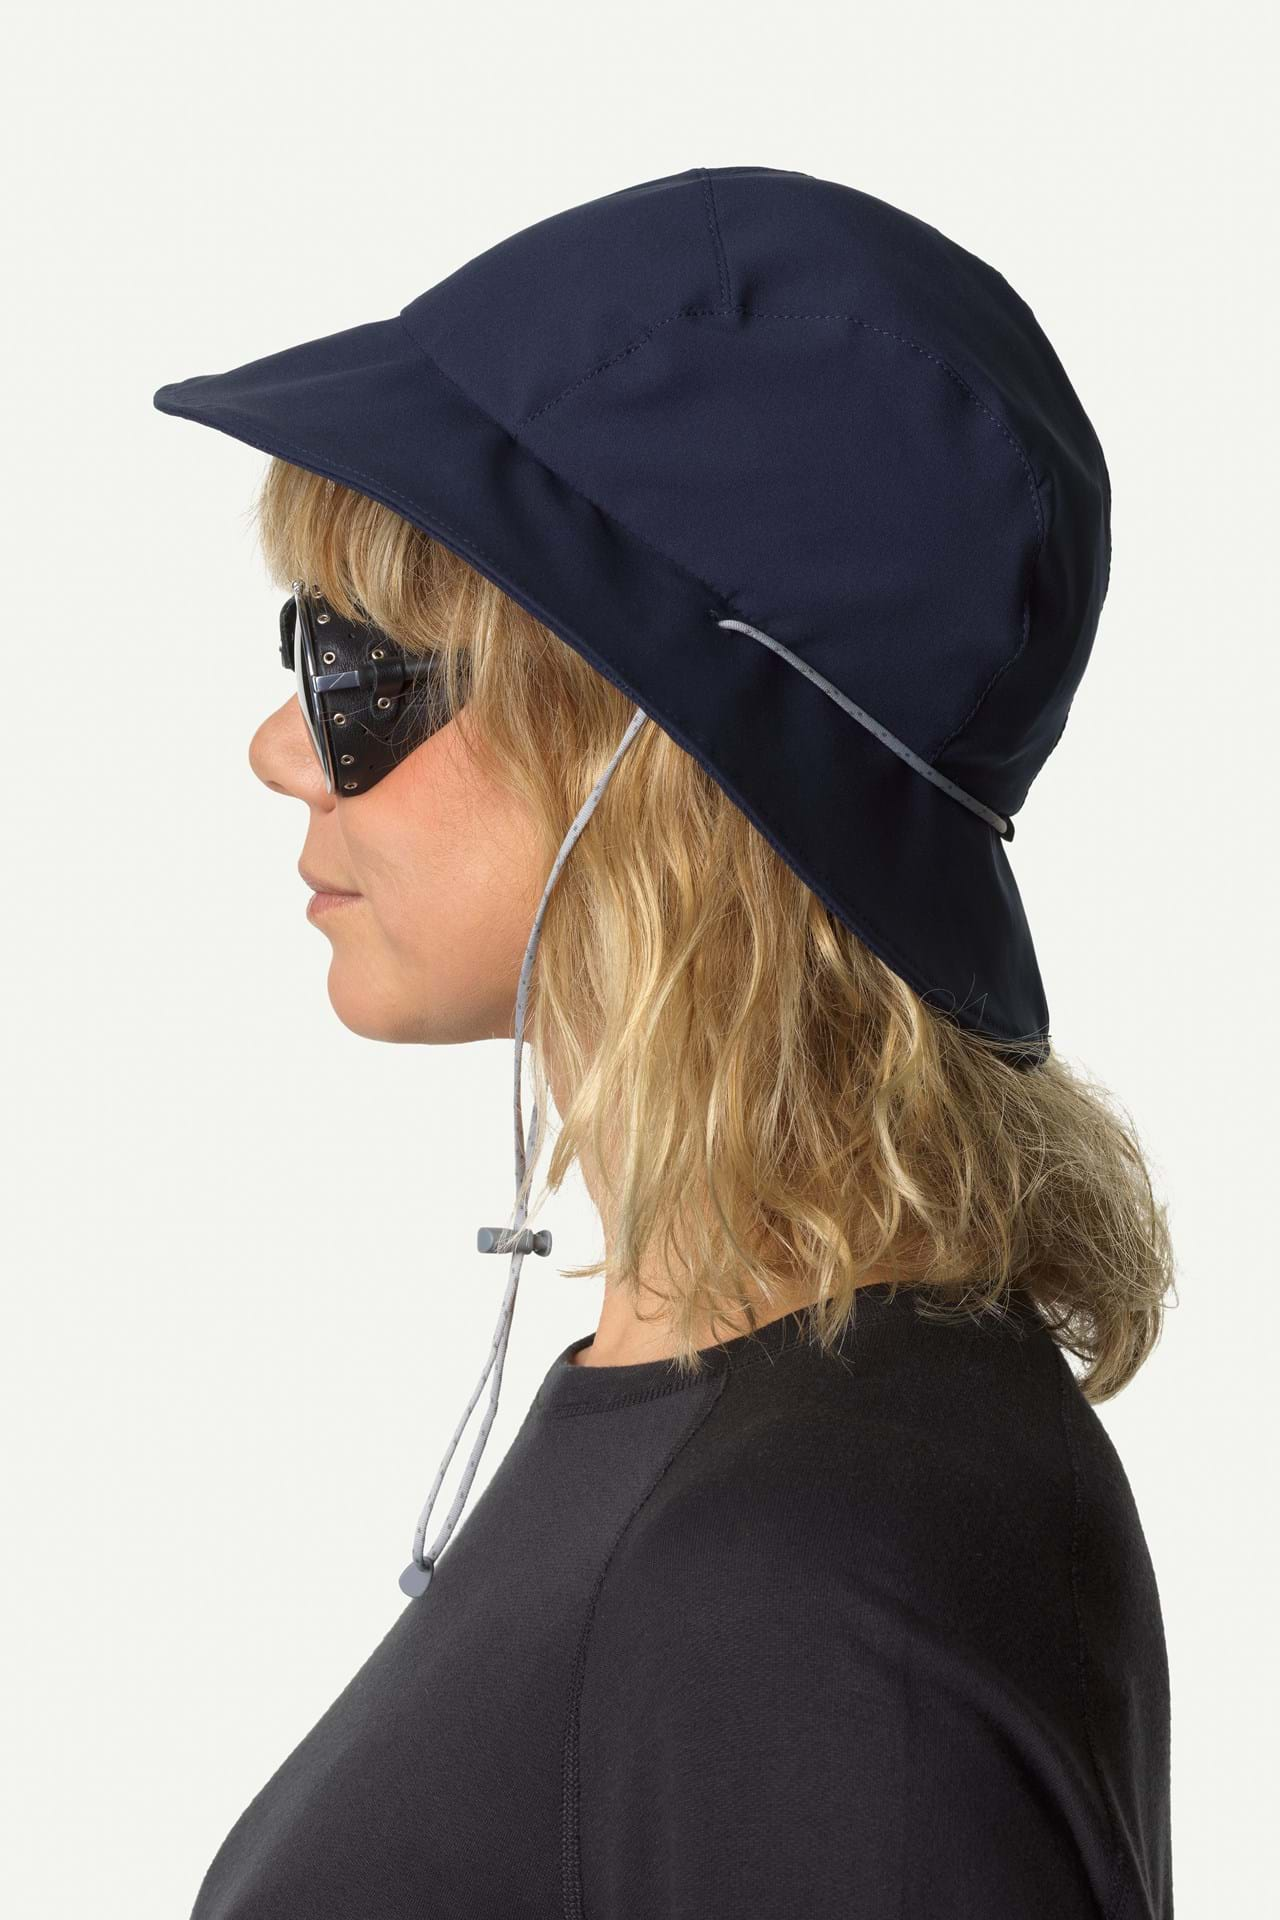 Classic sunhat in a quick-drying and highly breathable polyester fabric. Light and cool hat, perfect for travelling in hot climates. Gone Fishing Hat is great for kayaking, beach volleyball and other activities in the gazing sun. It's the perfect cross breed between classic style and progressive materials.